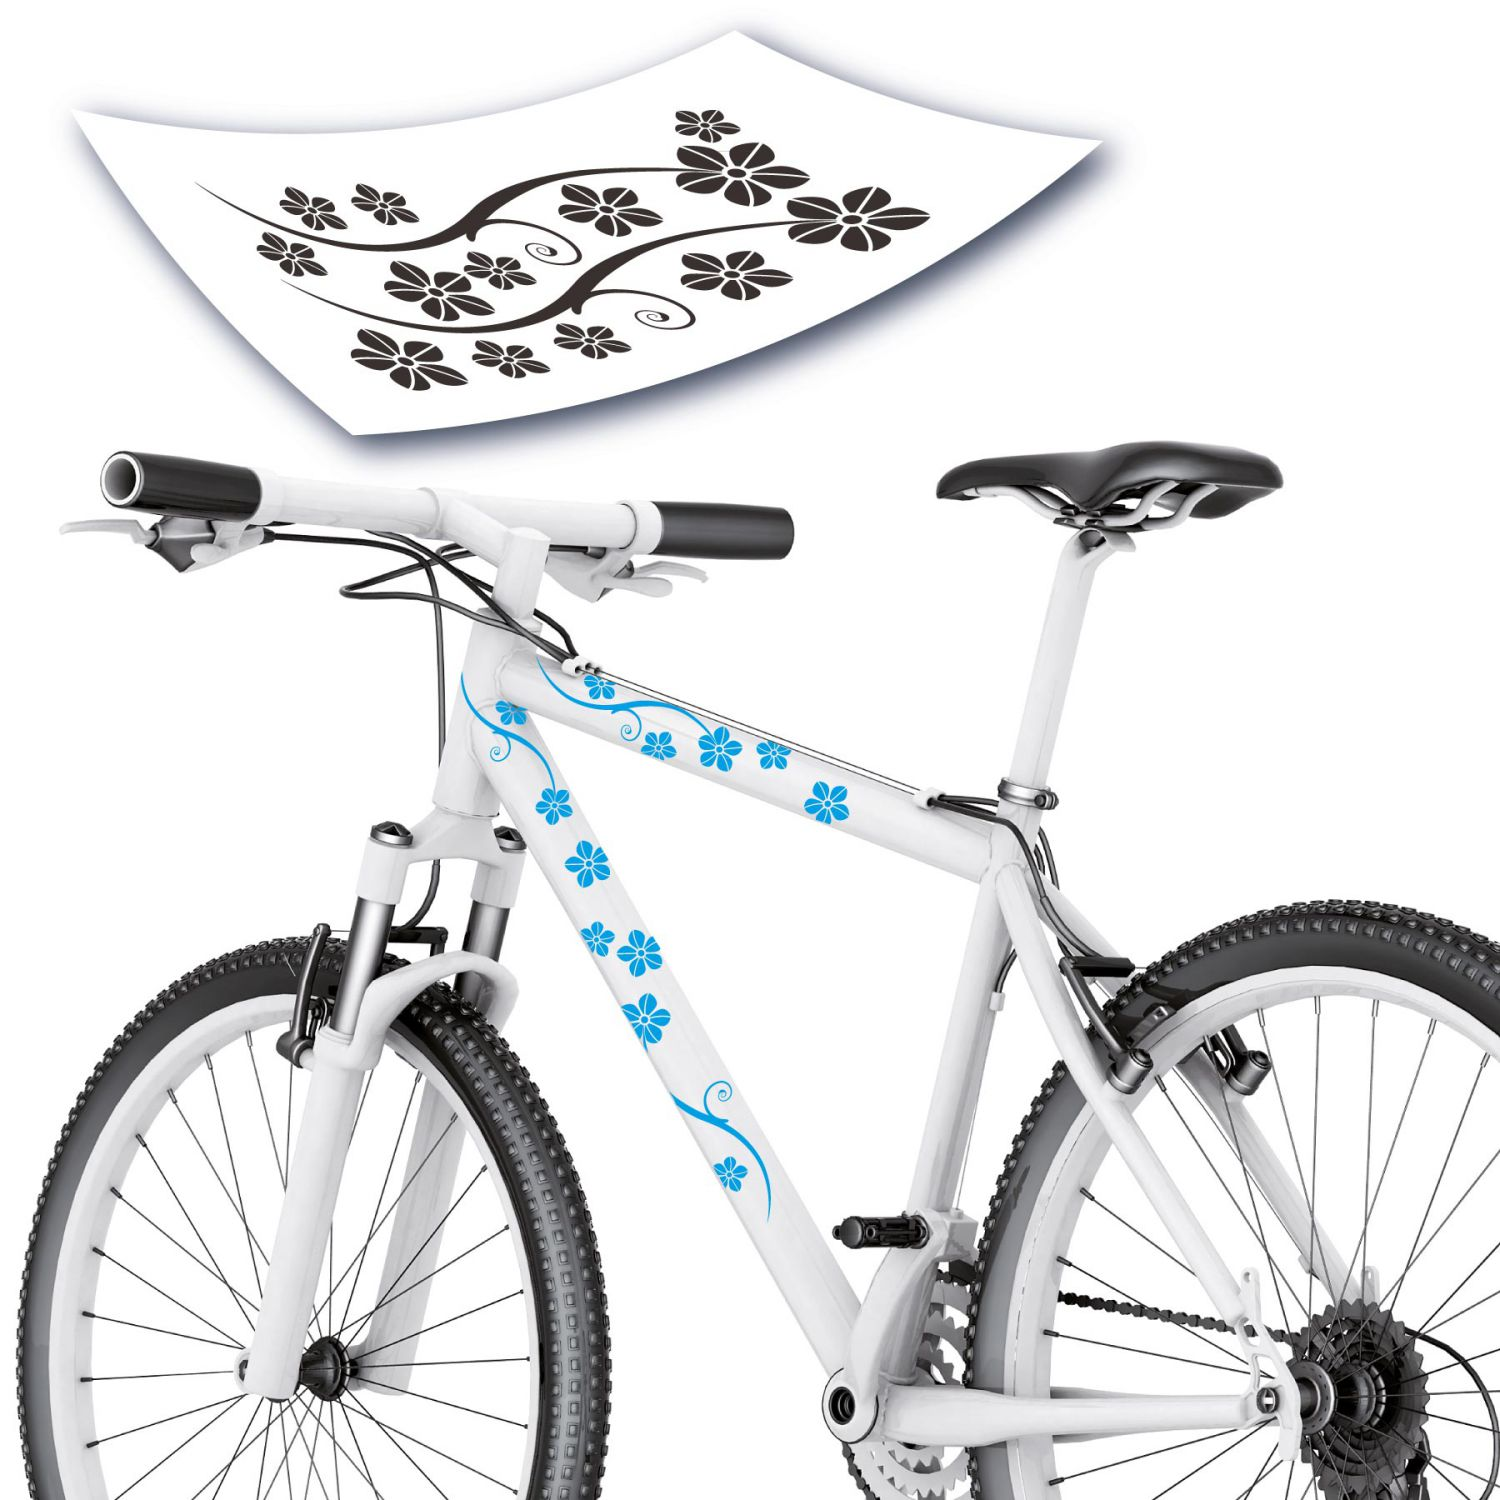 blumen bl ten fahrradaufkleber fahrrad aufkleber sticker hibiskus style4bike ebay. Black Bedroom Furniture Sets. Home Design Ideas